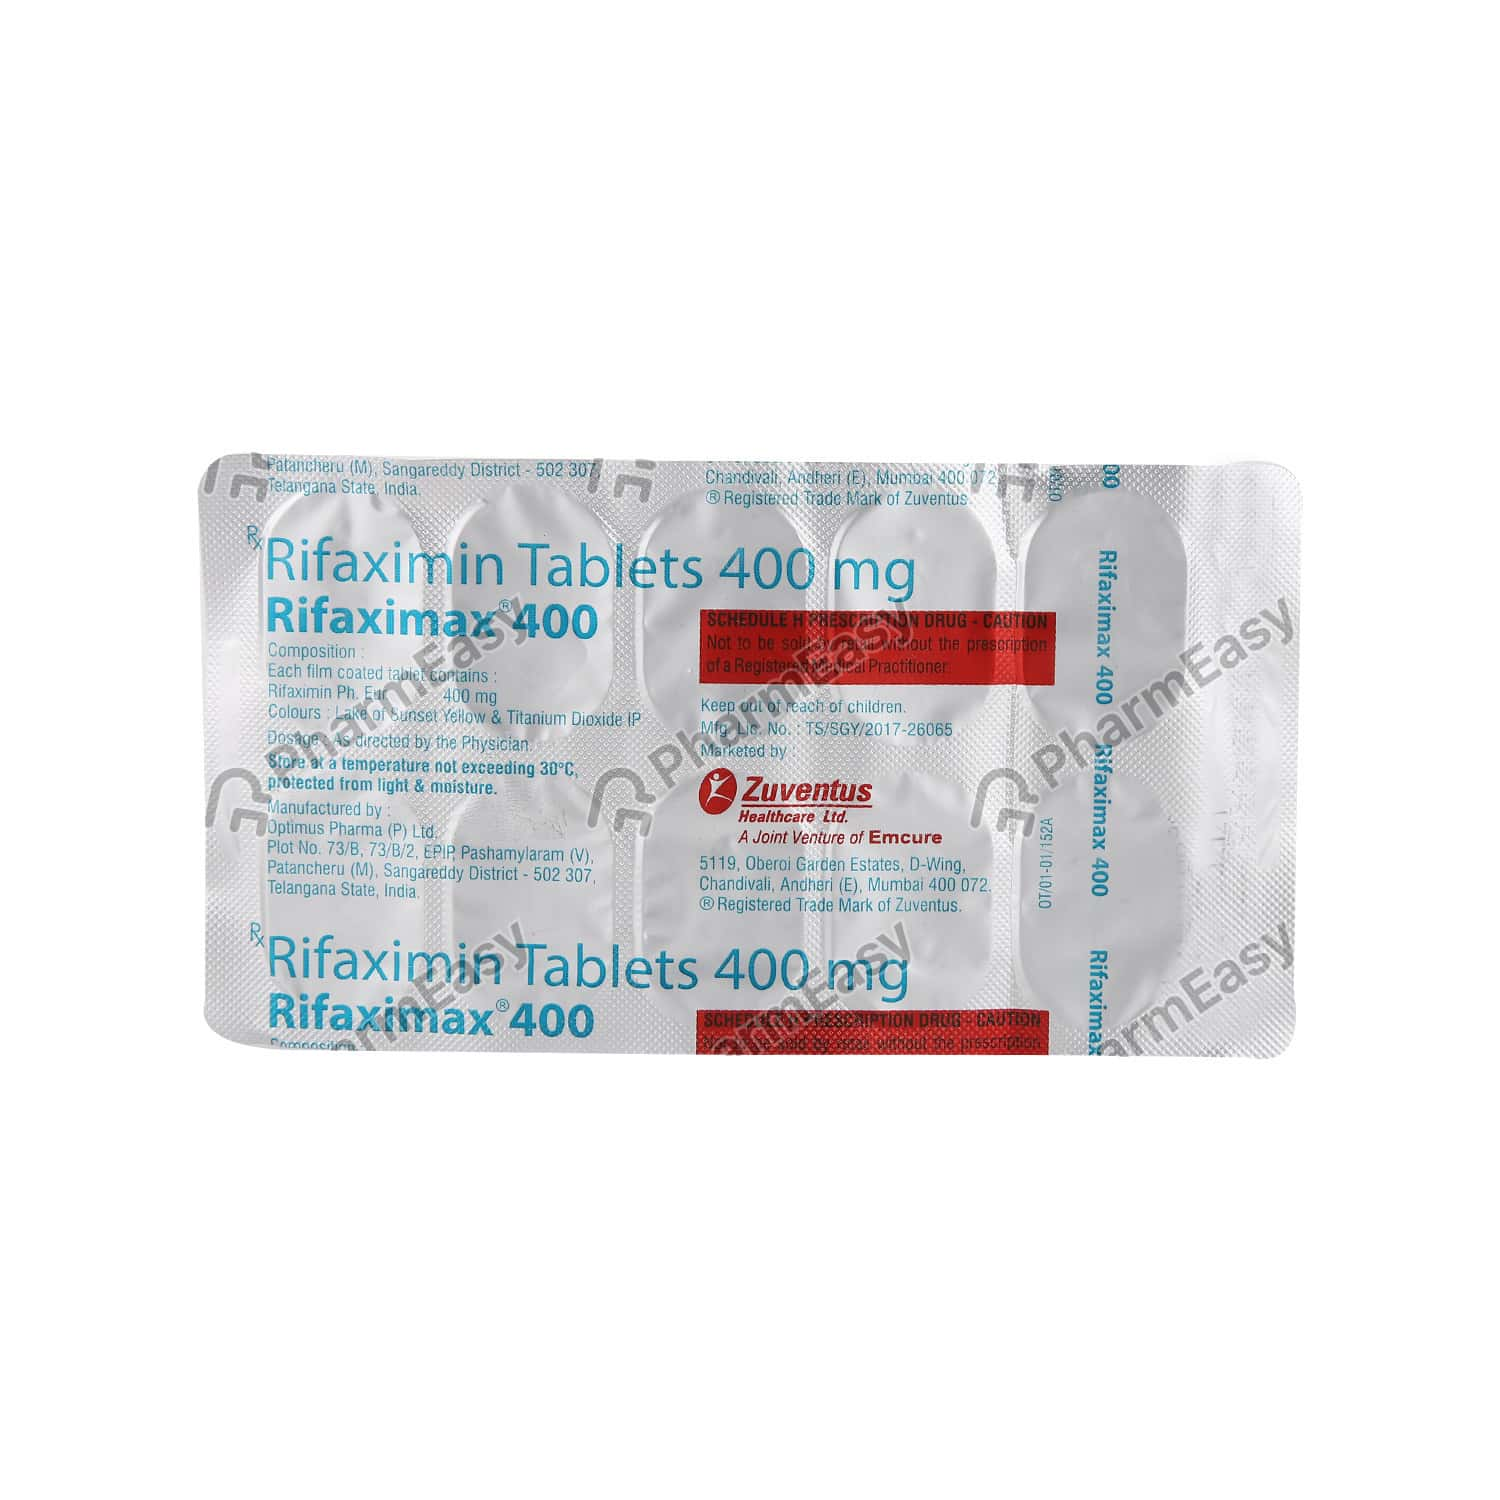 Rifaximax 400mg Tablet